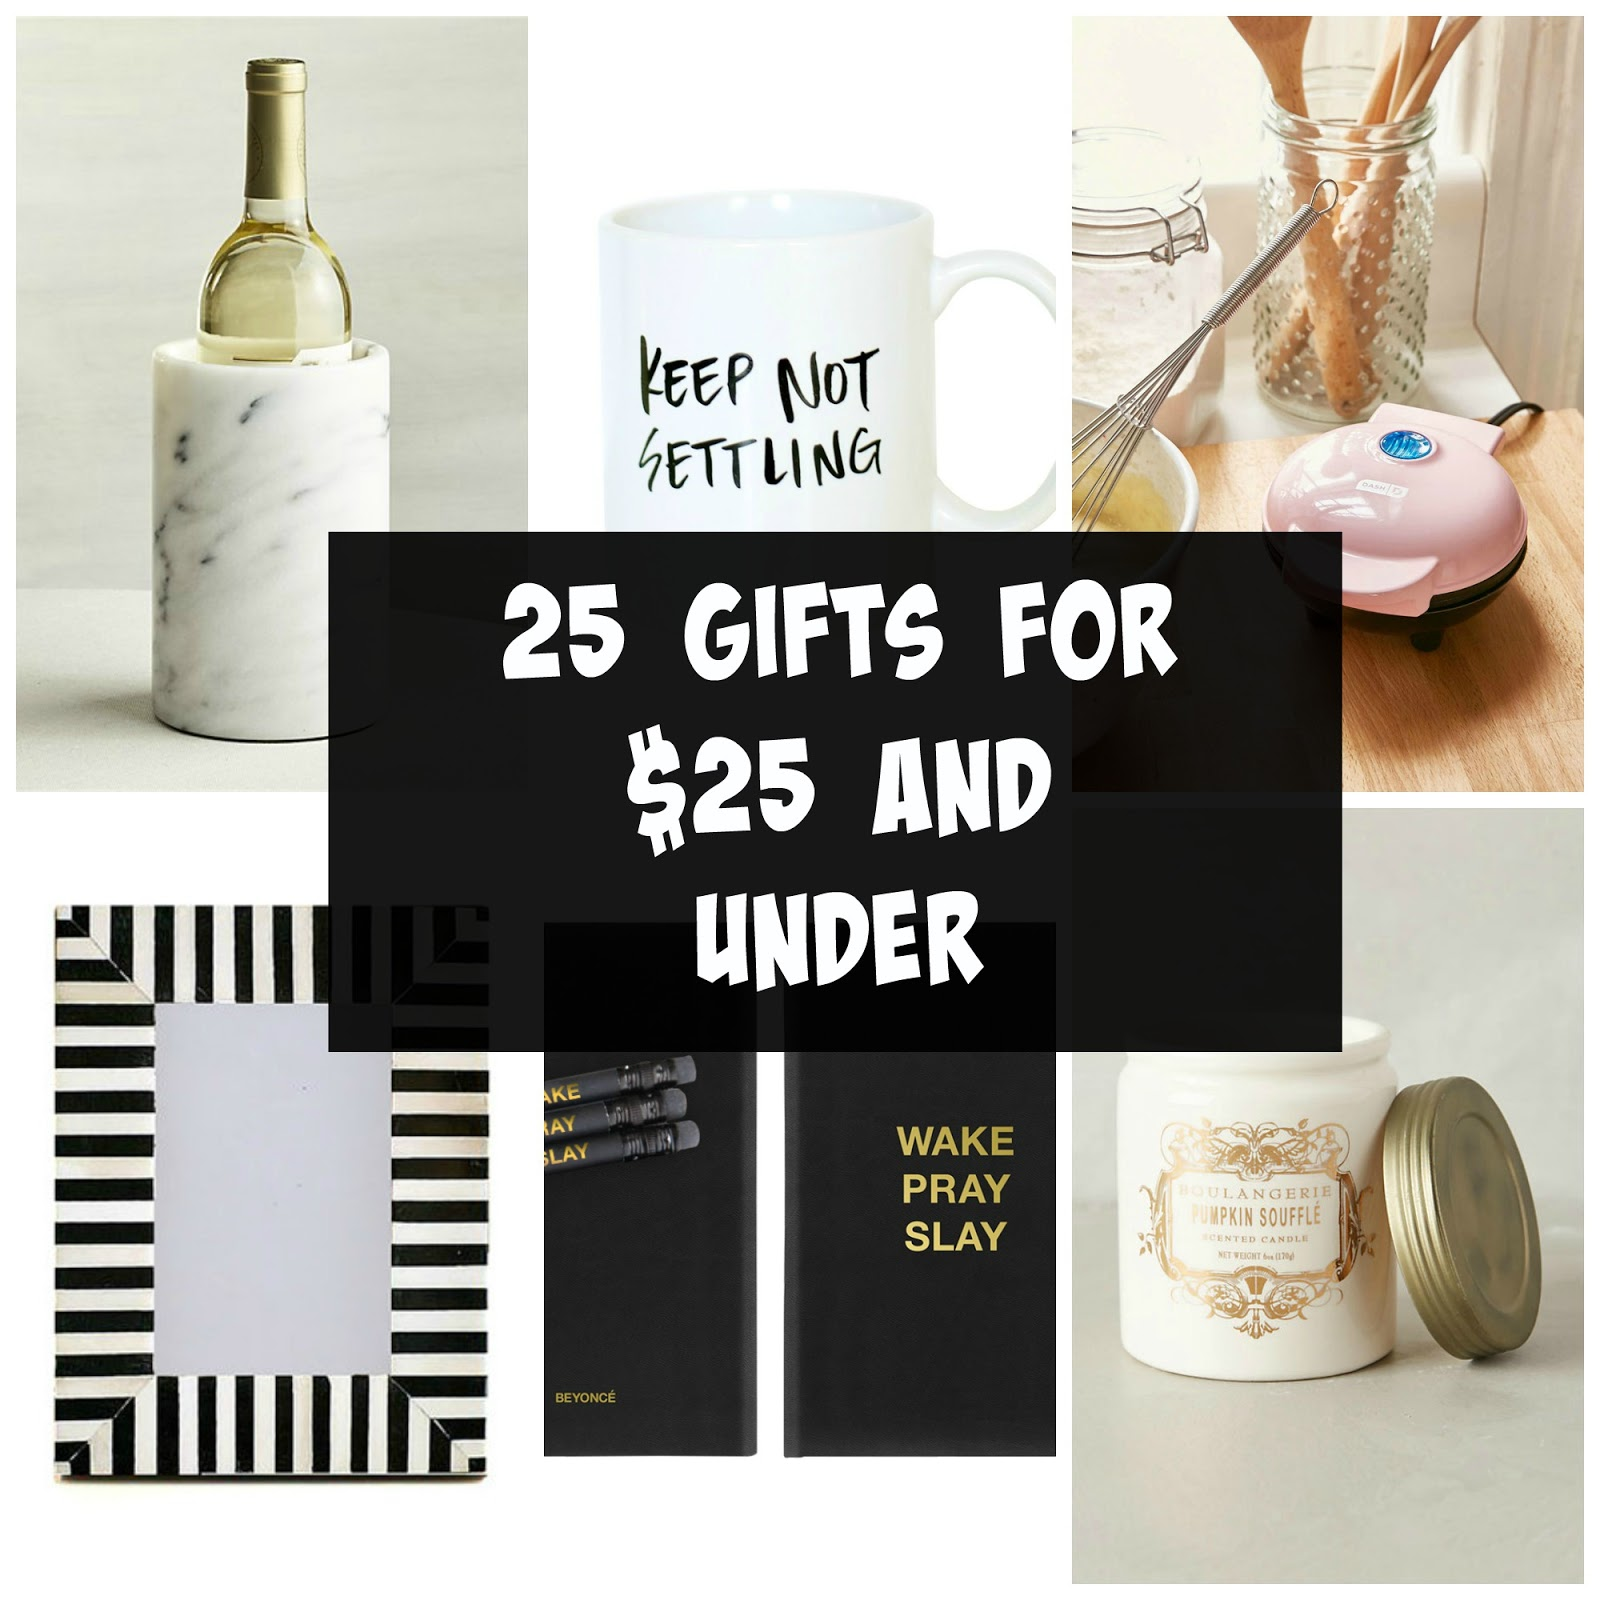 25 Gifts for $25 and Under